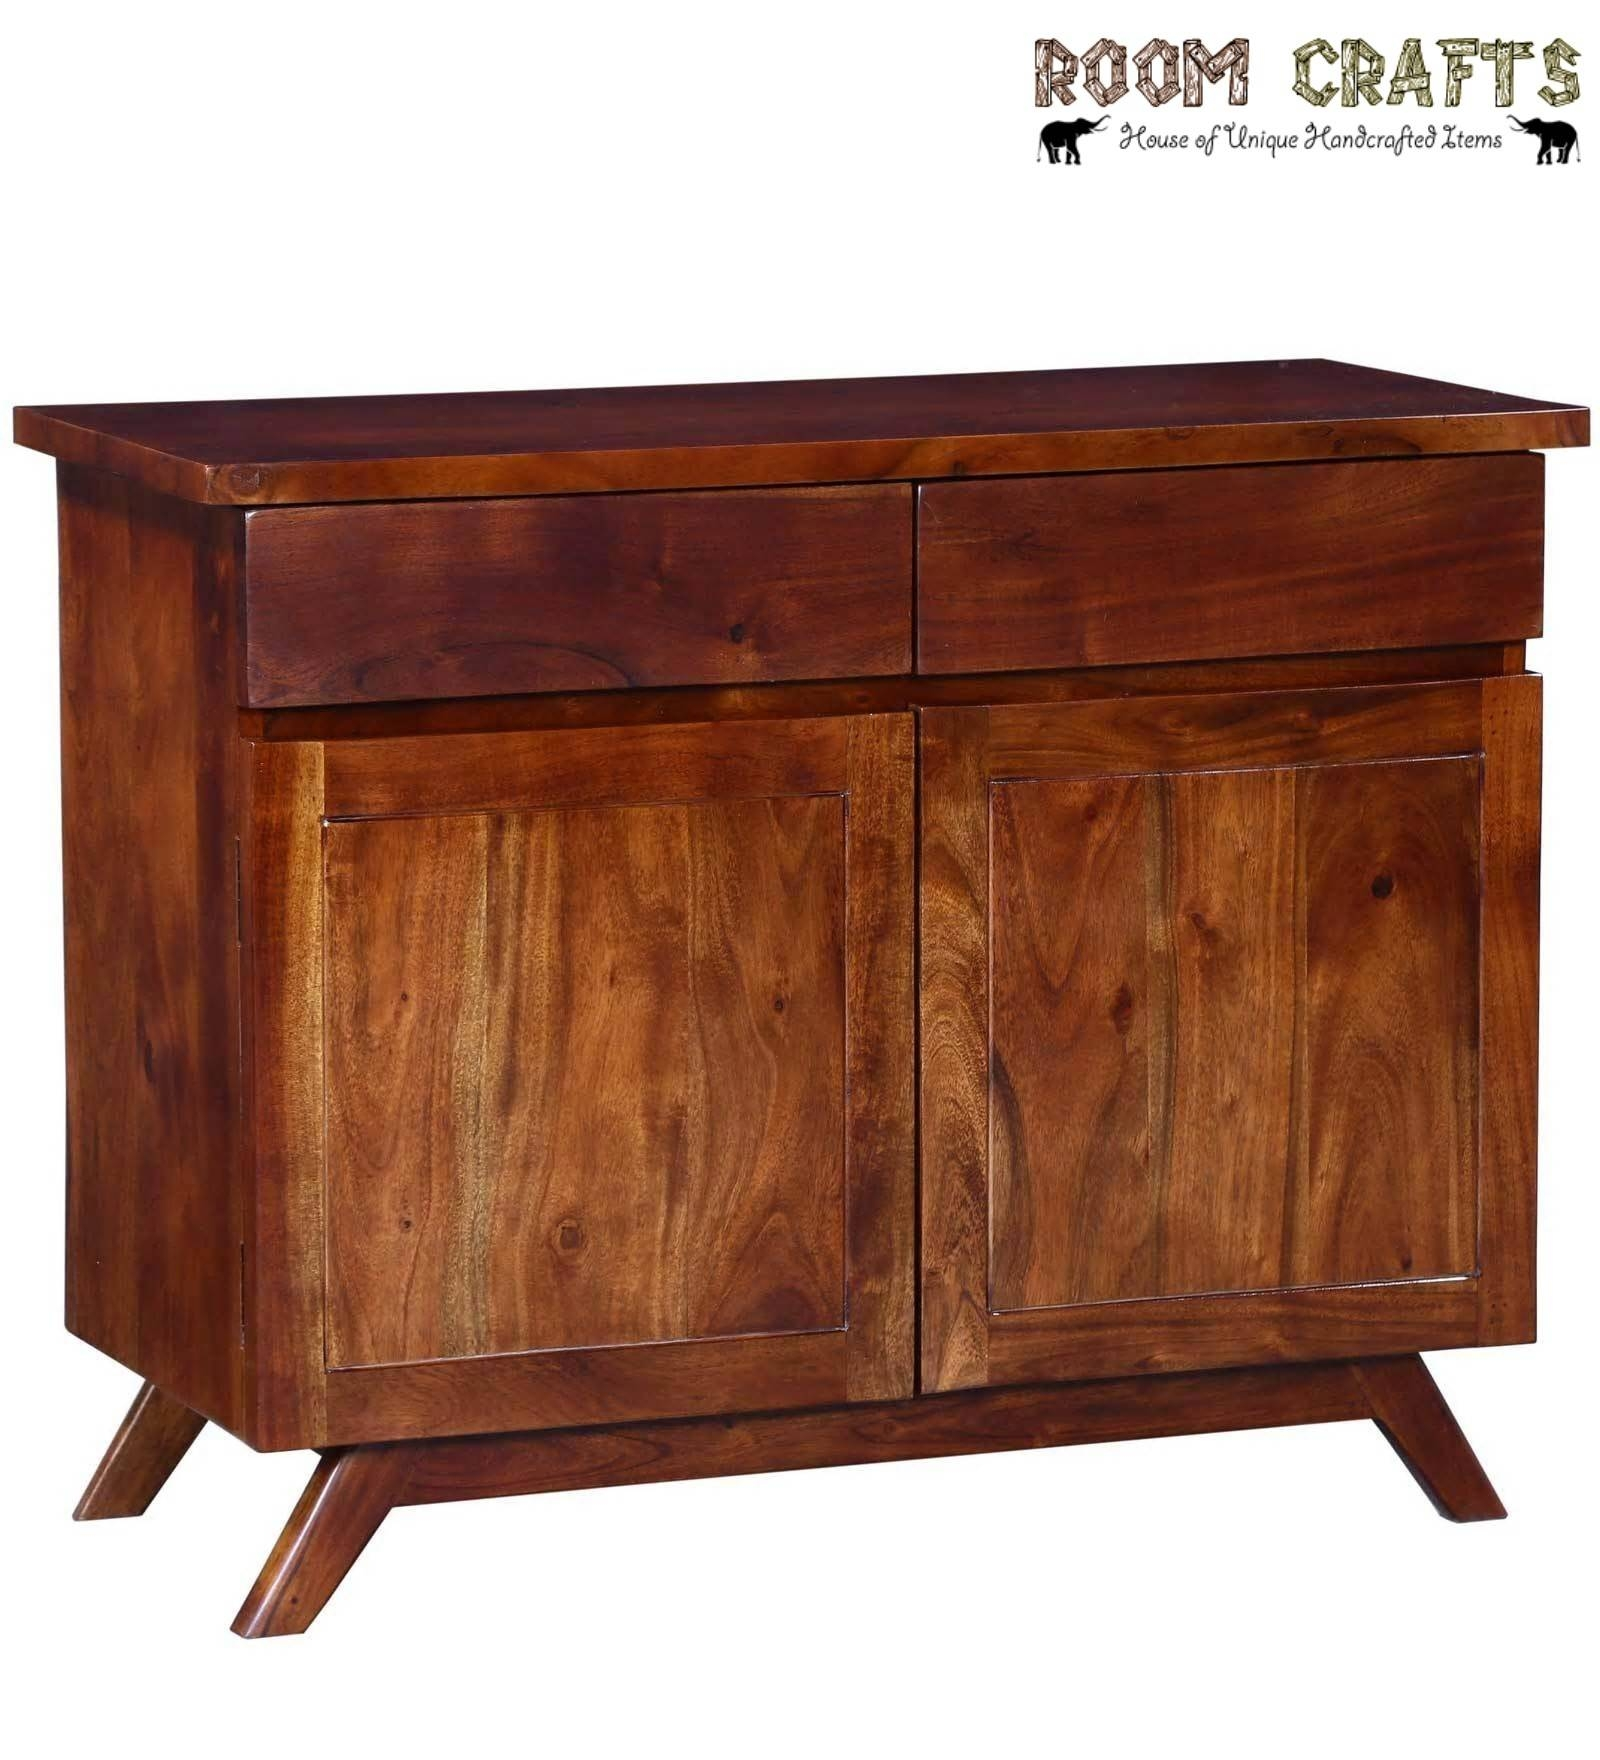 Room Crafts- Furniture- Cabinets & Sideboards within Sheesham Sideboards (Image 22 of 30)